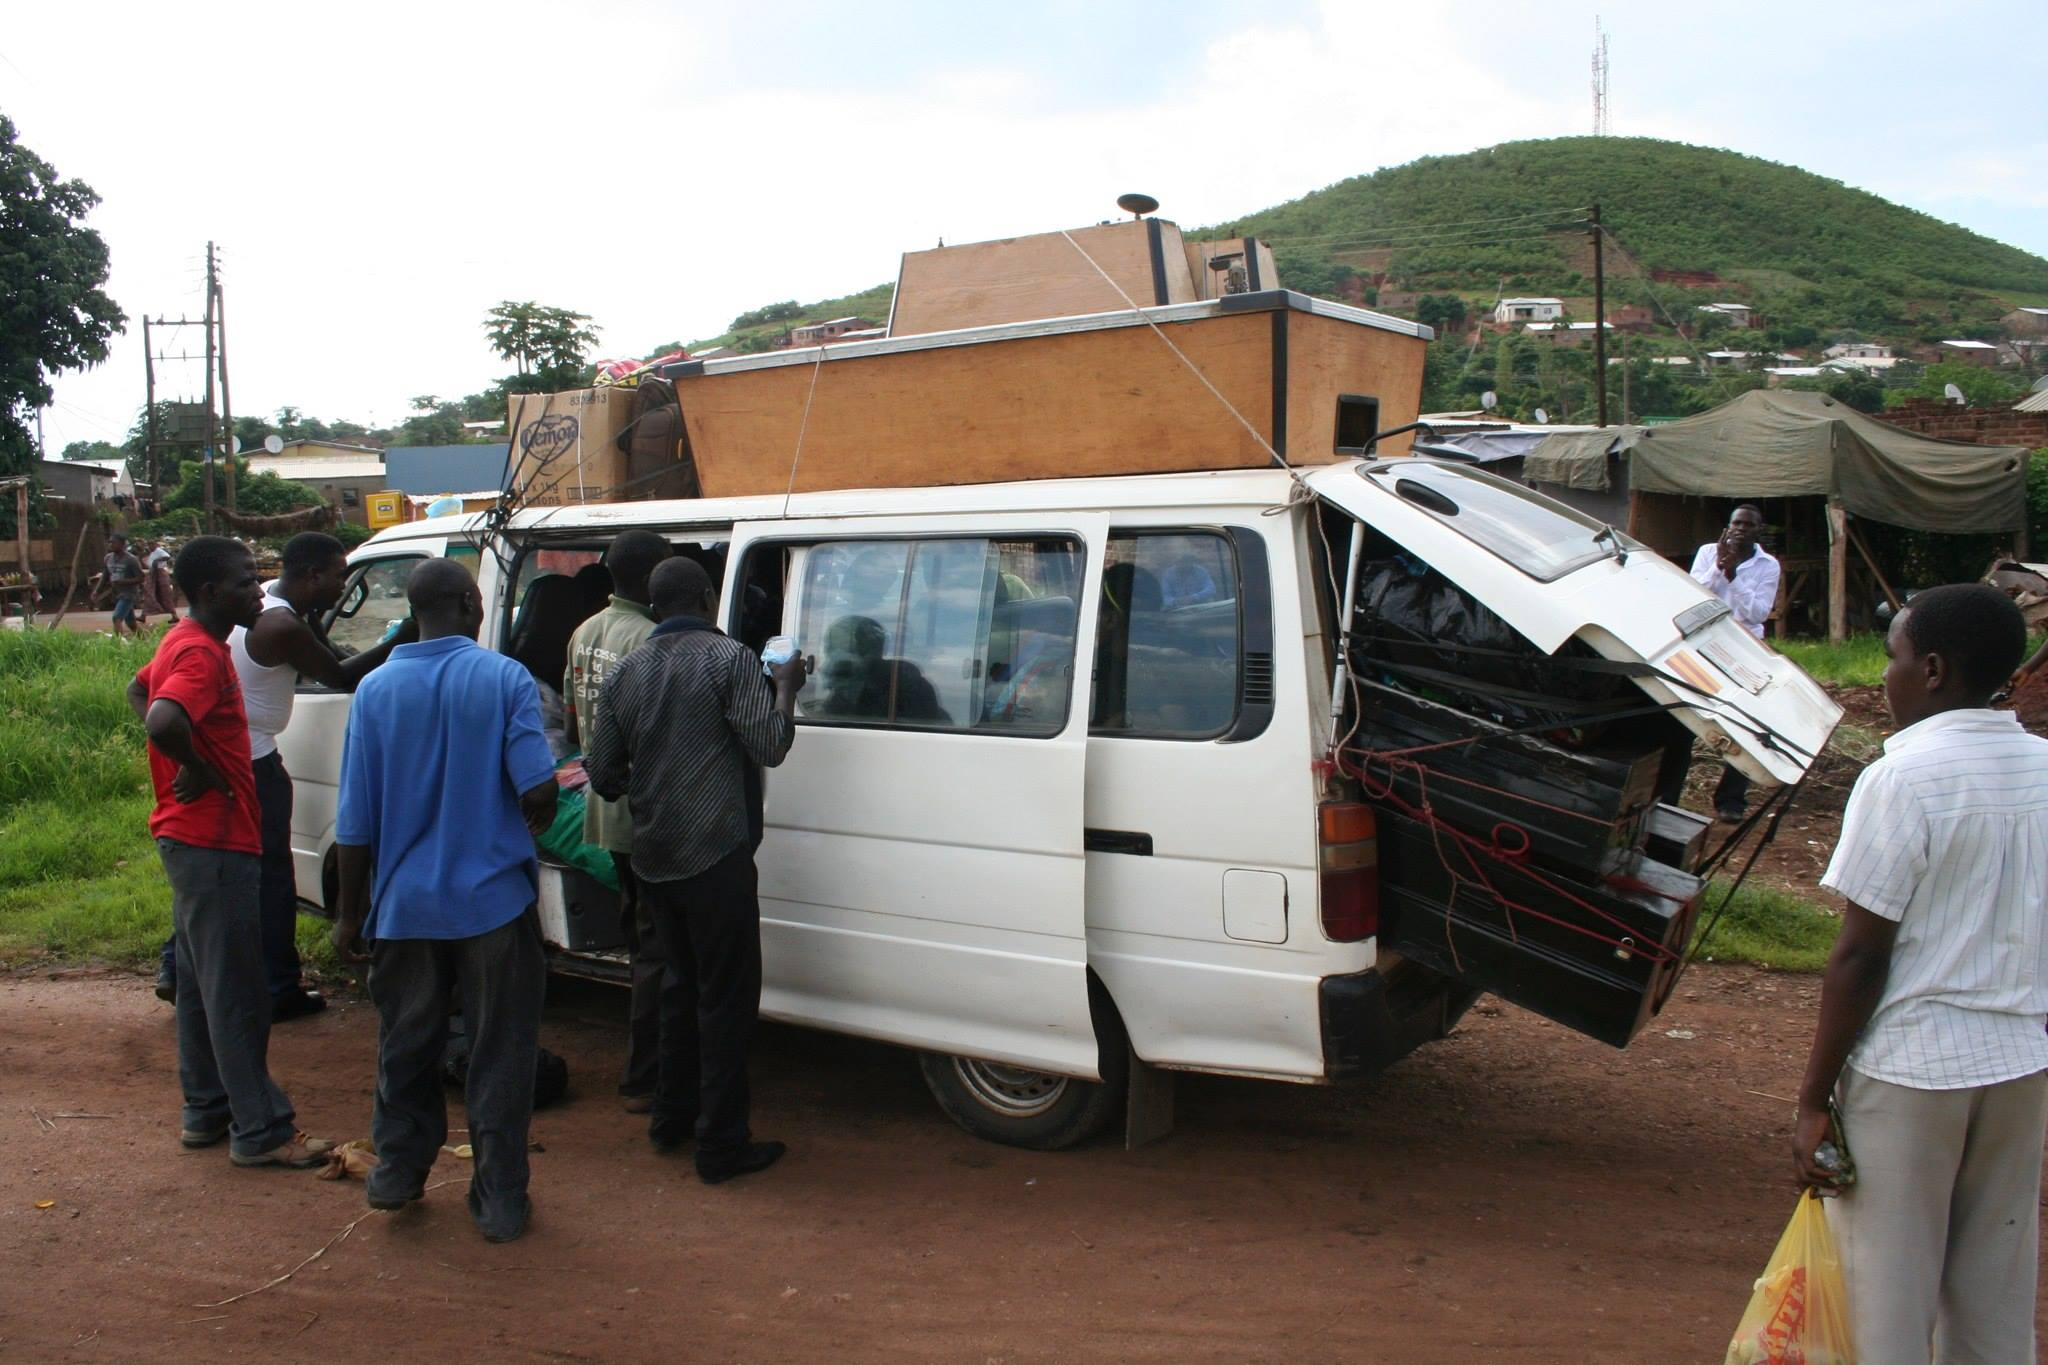 Crowded bus in Zambia with billiards table on roof